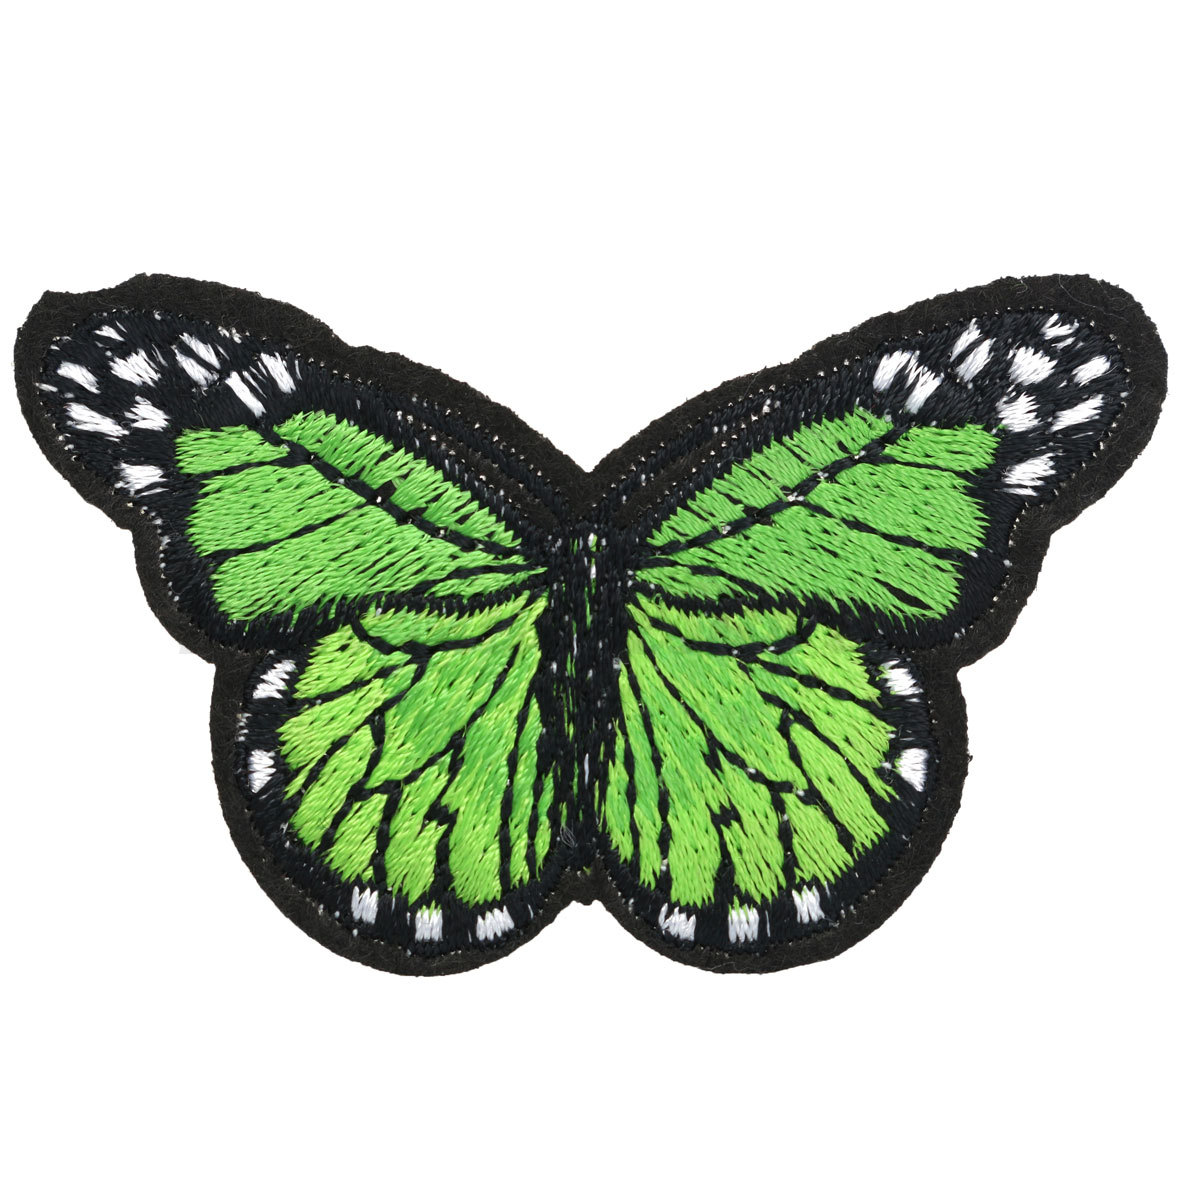 Skull butterfly sew iron on patch clothing embroidery